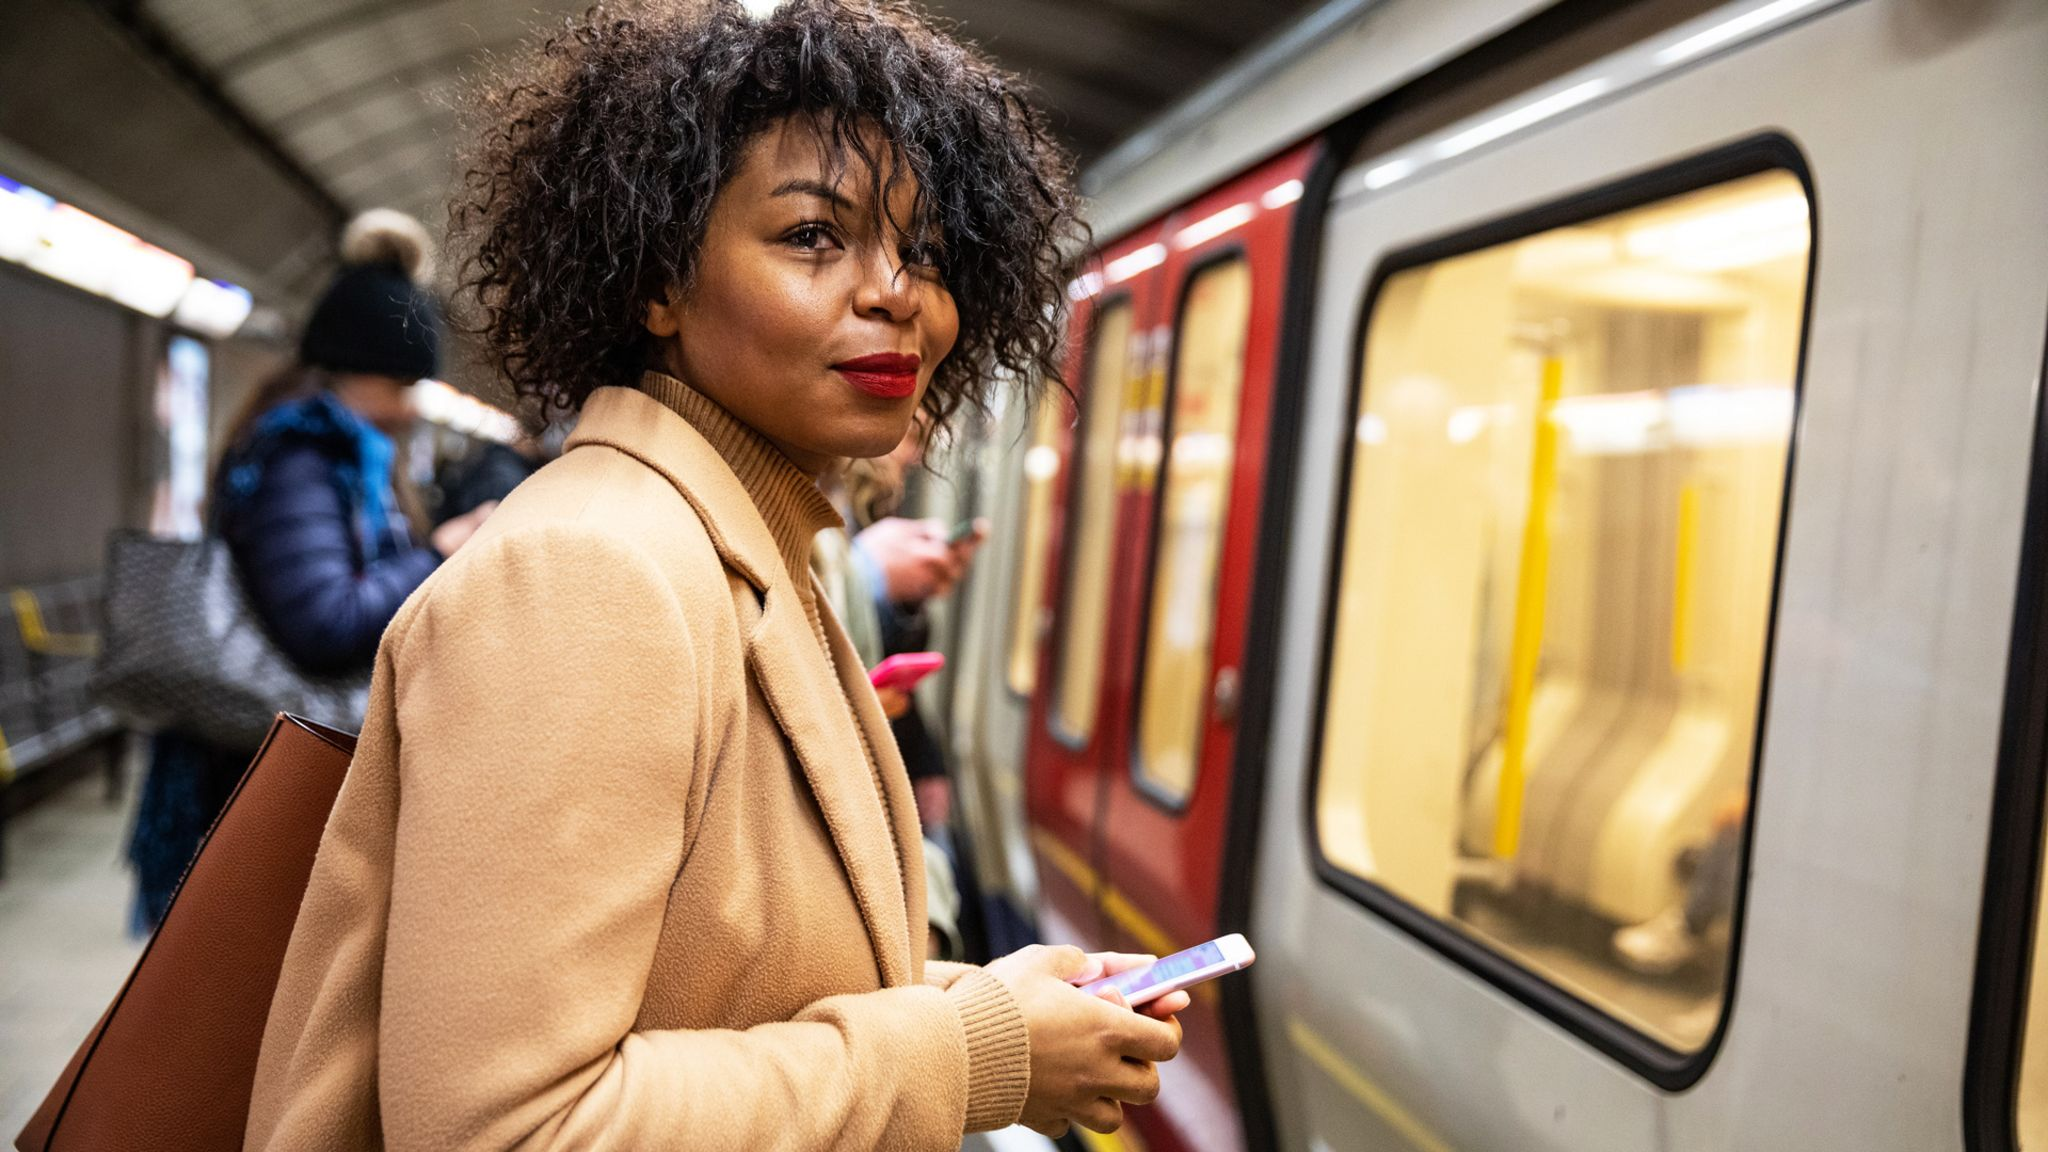 Woman waiting for an underground train